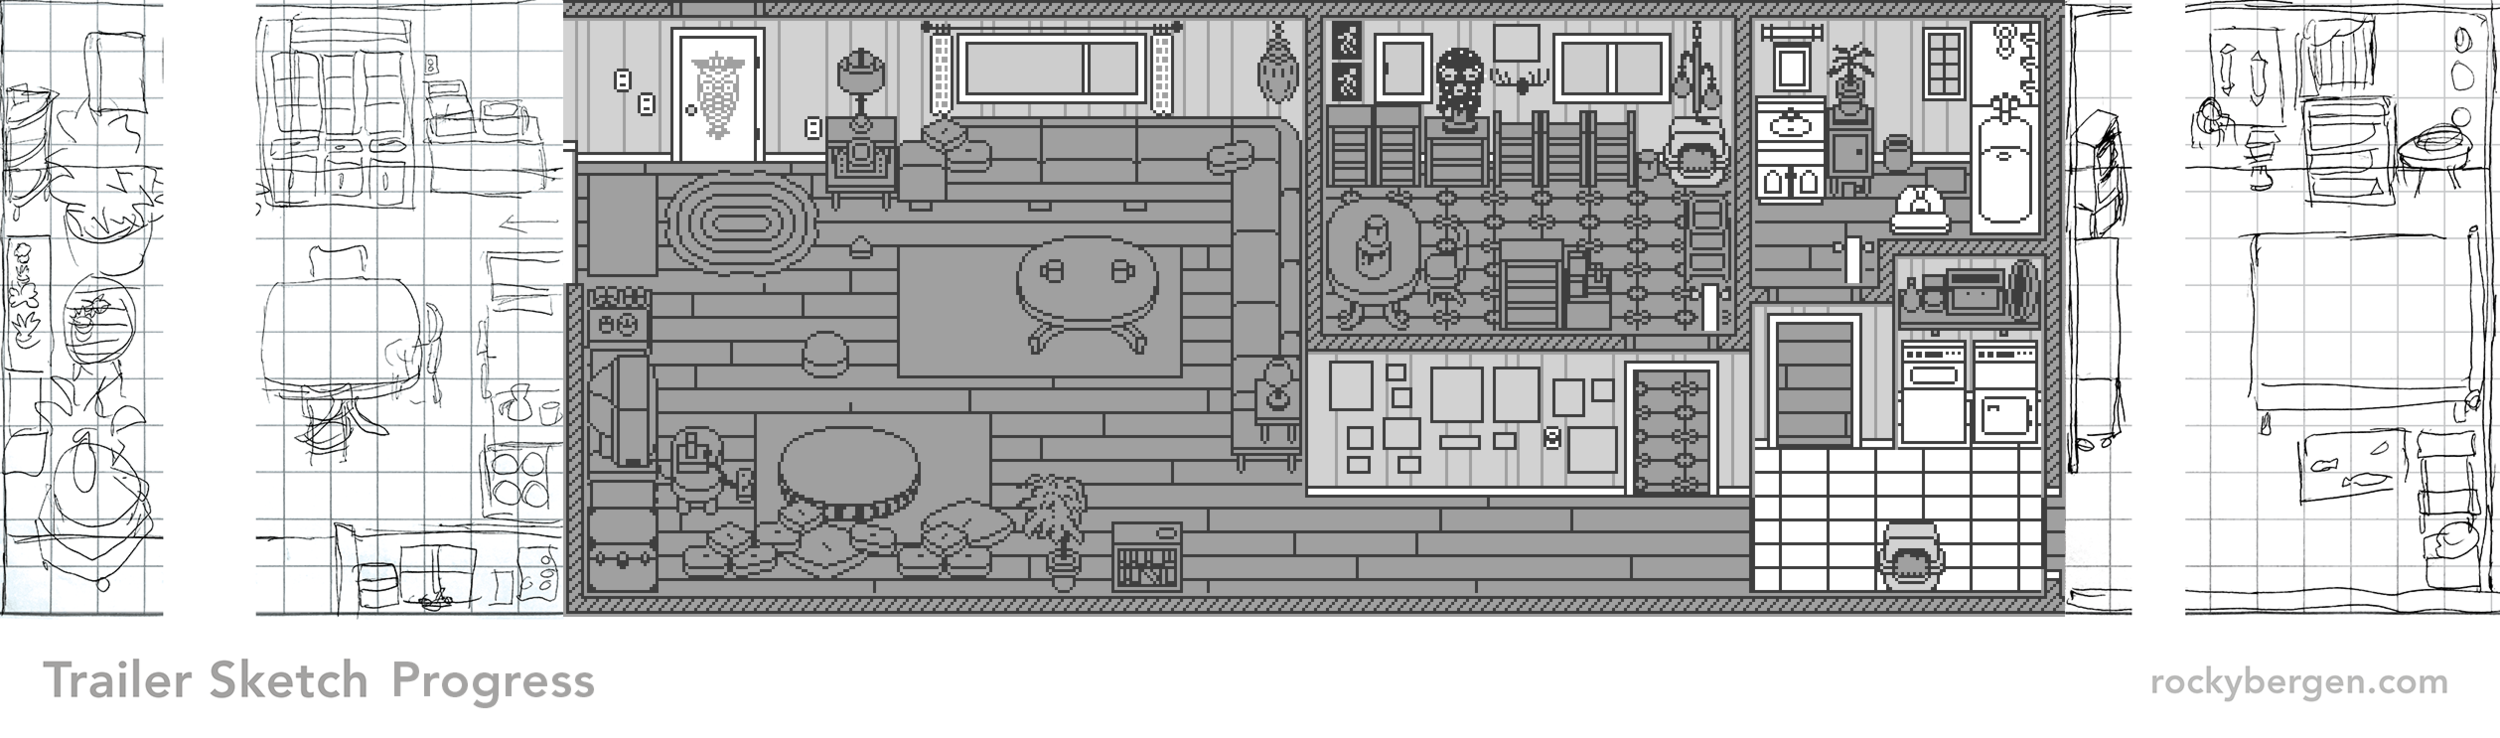 "The final two rooms are smaller than the ""first two"" but are both full of interesting details so I will avoid the impulse to start rushing. This is a labour of love!"